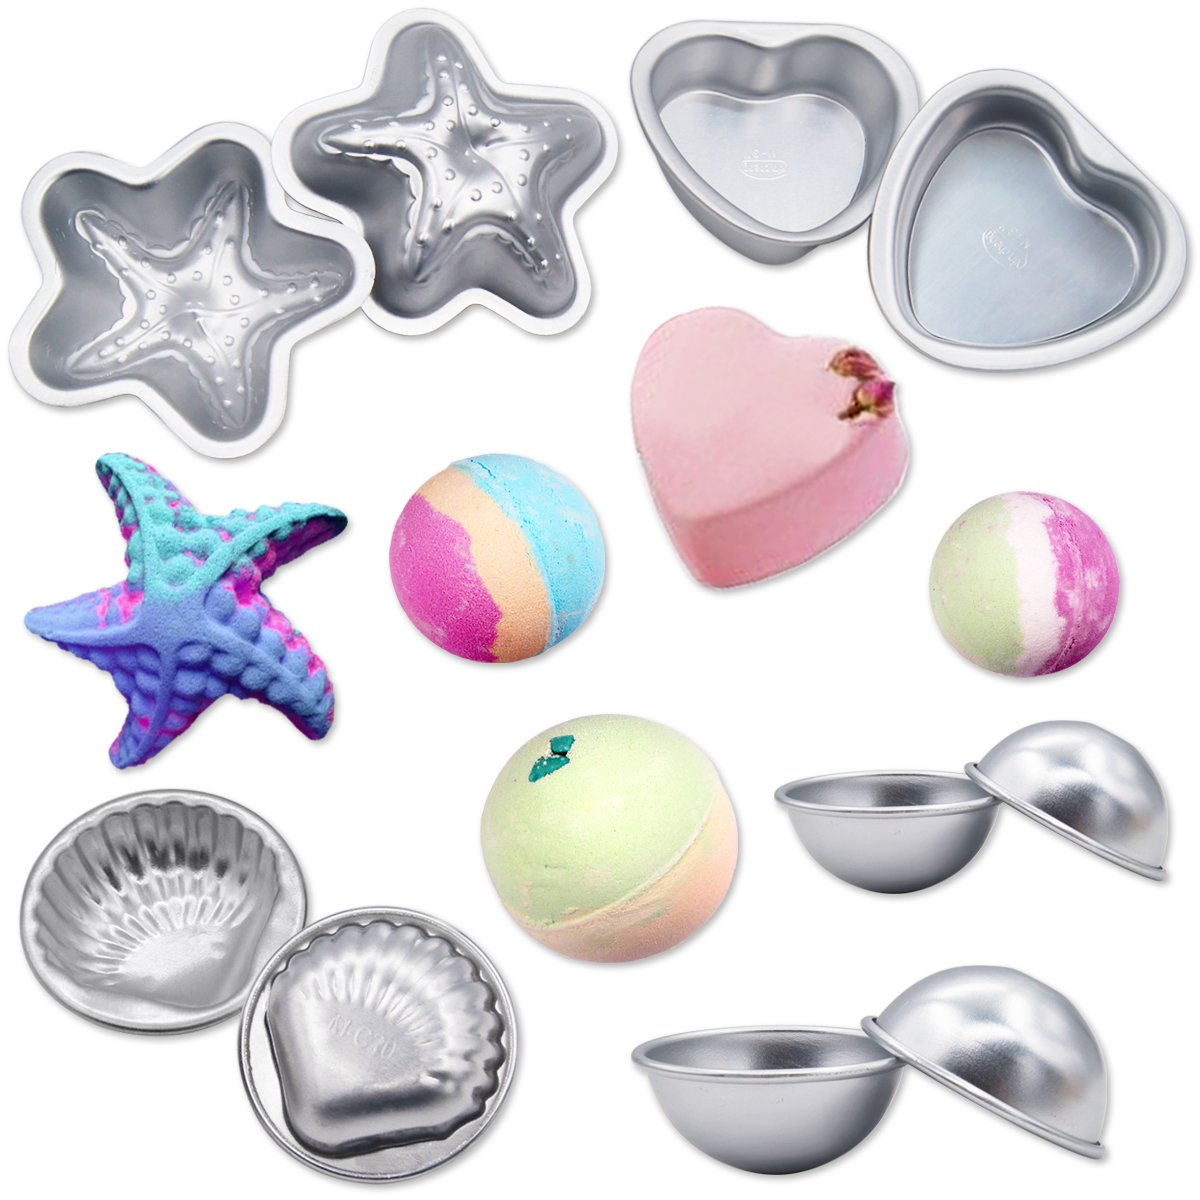 MelonBoat Metal Bath Bomb Molds Fizzies Set of 5, 2 Shell Shape, 4 Hemispheres (2-3/8'', 2''), 2 Heart Shape, 2 Starfish Shape, Cake Pan Molds, Aluminum